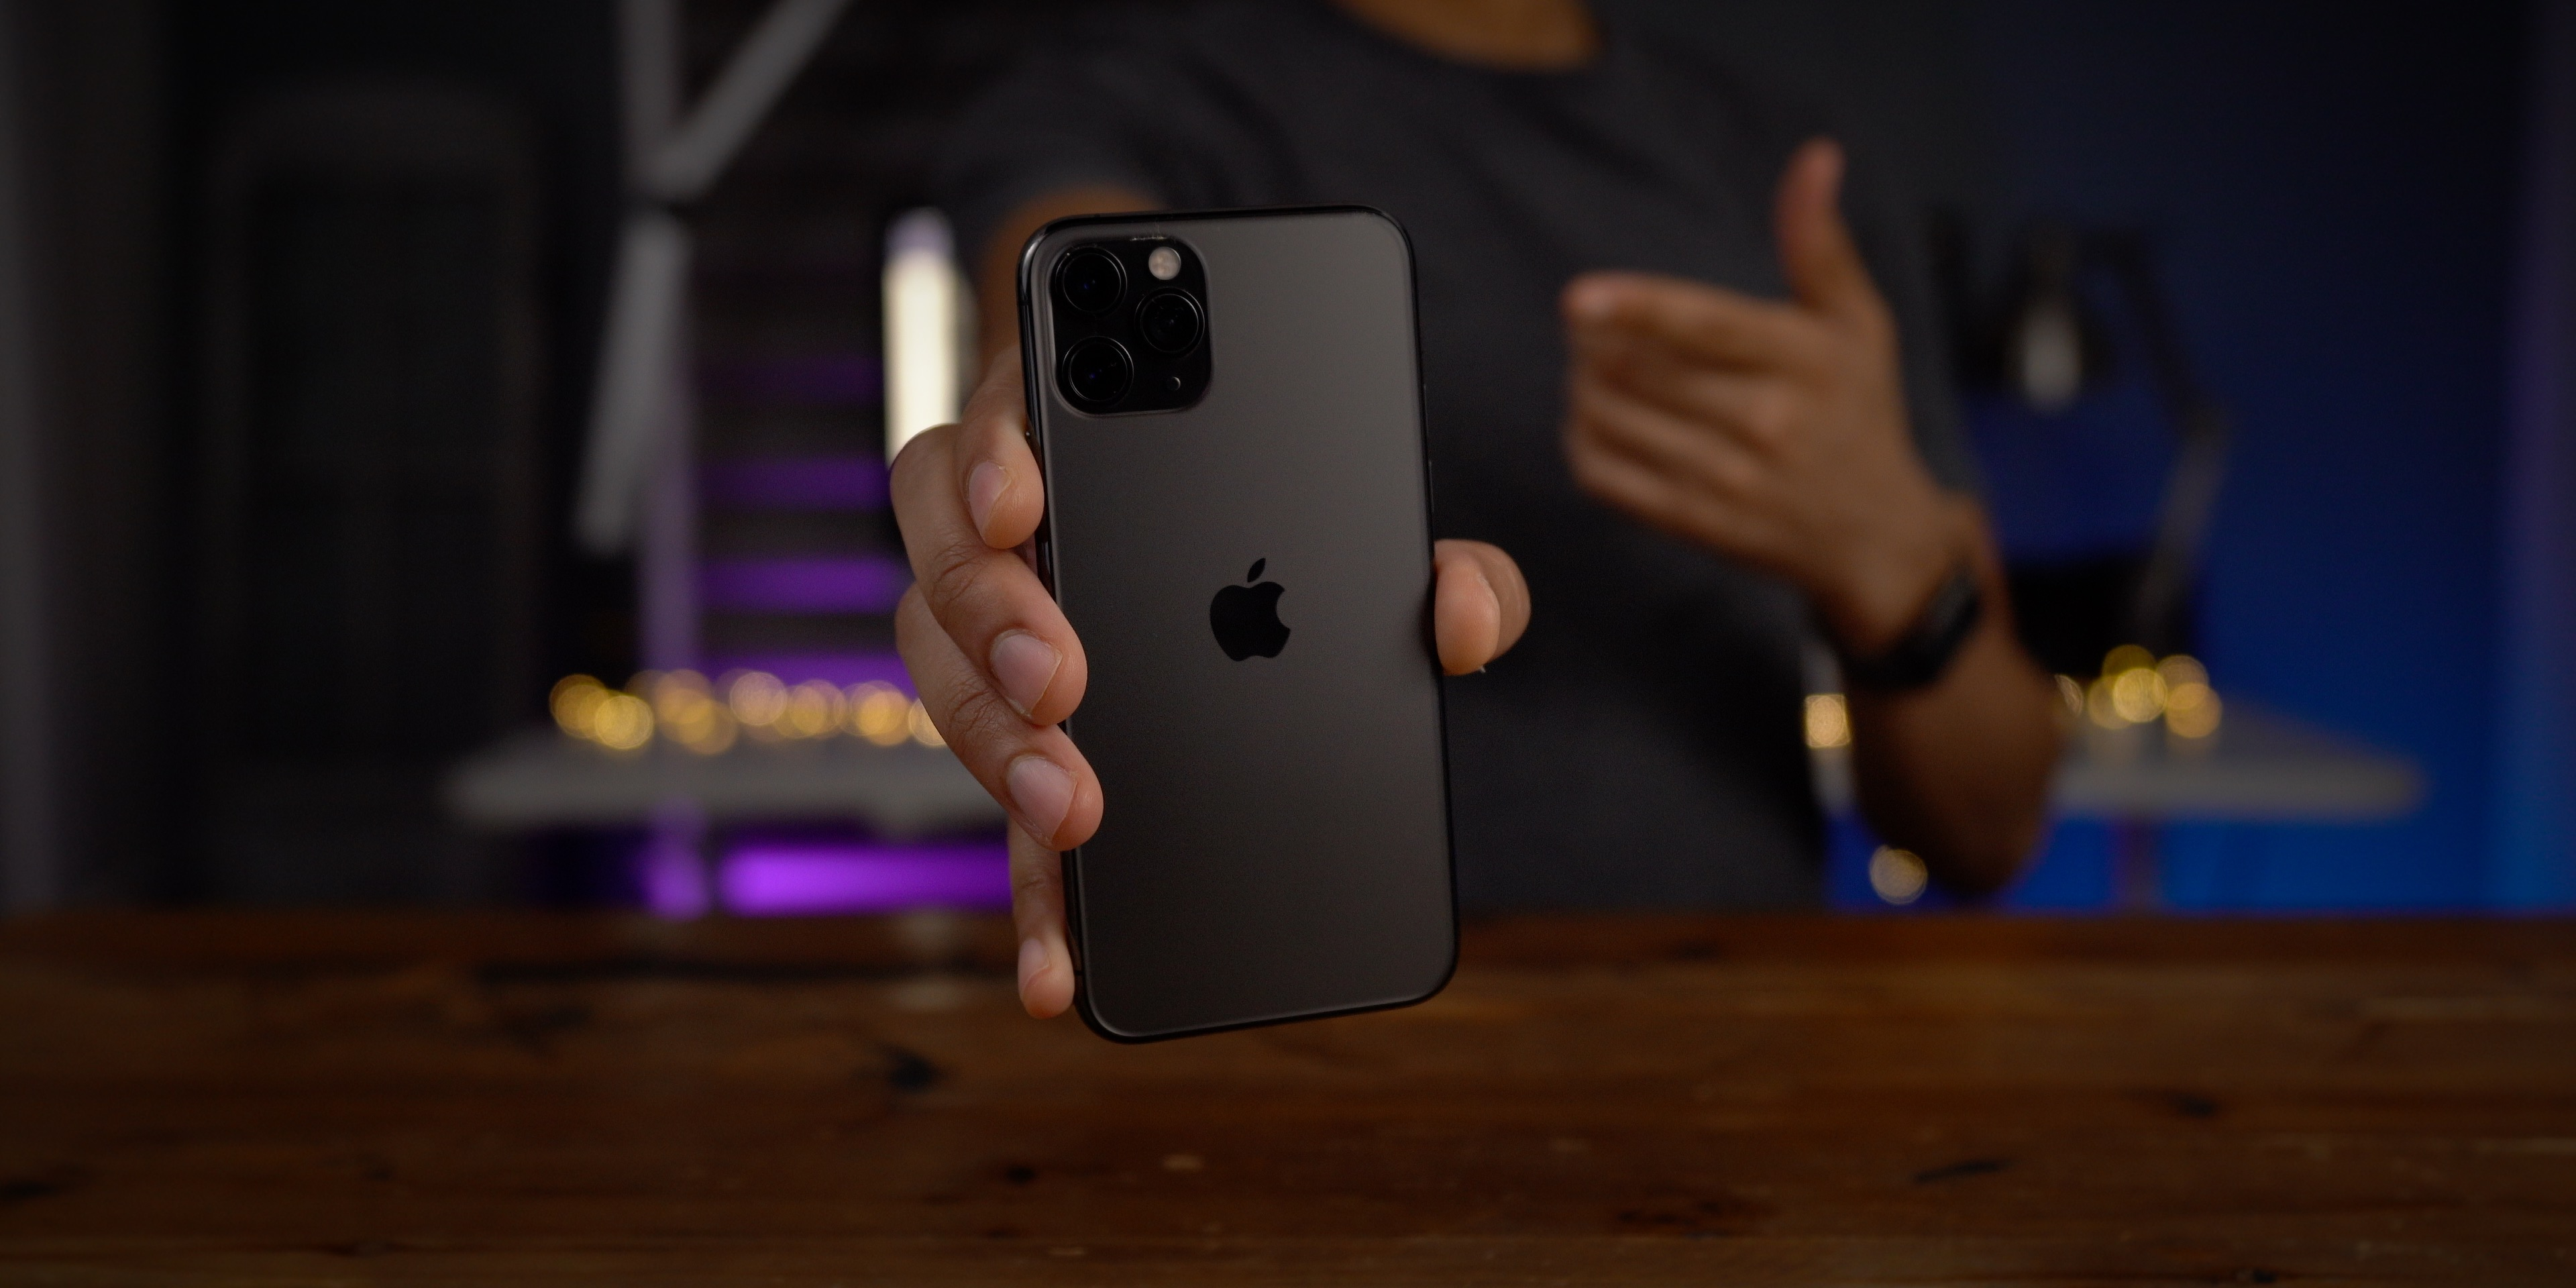 Iphone 11 Pro Review Is It Worth The Significant Price Premium 9to5mac